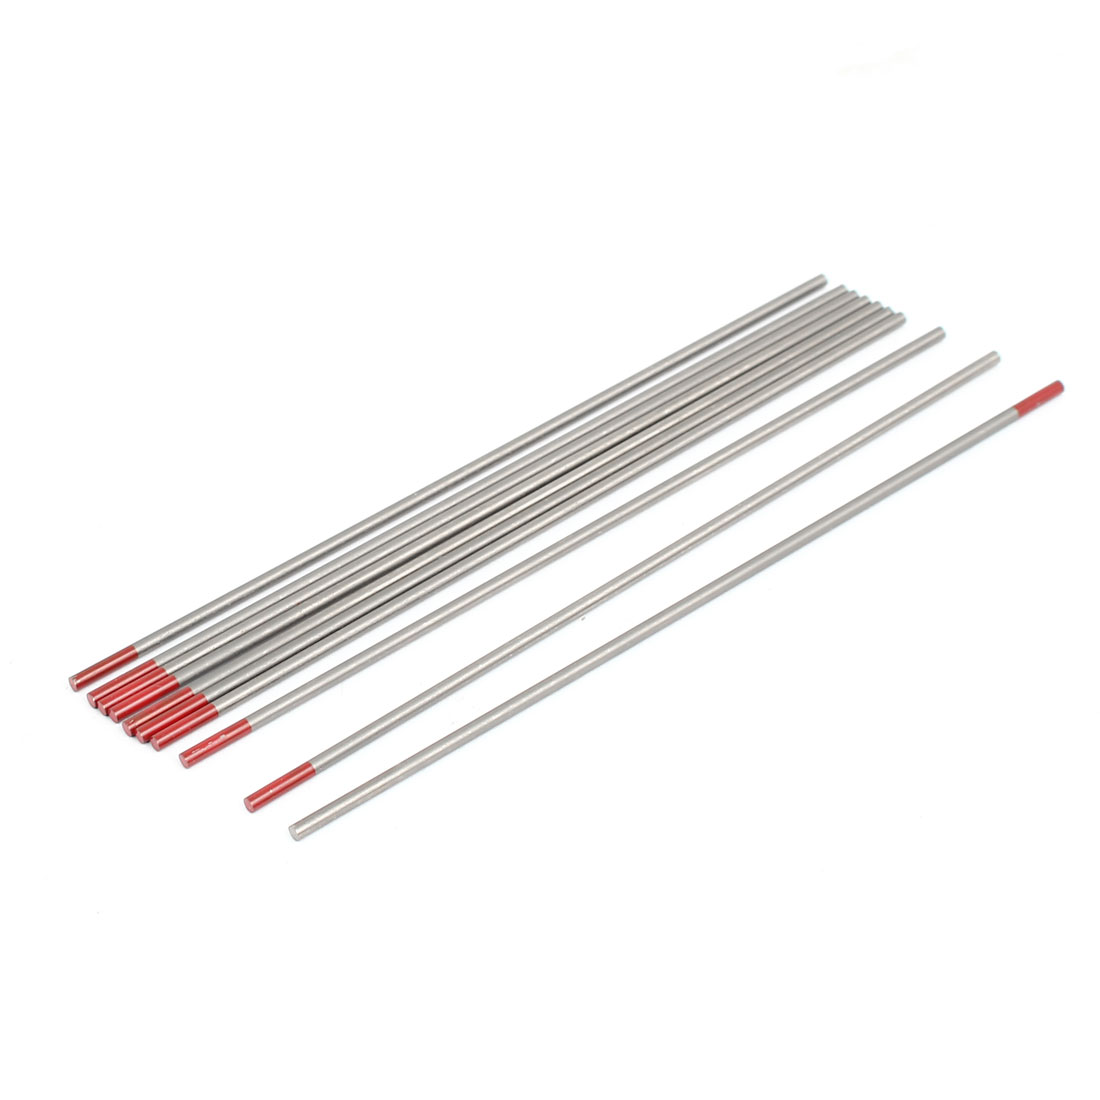 10 Pcs TIG Welding Thoriated Tungsten Electrodes WTh20 2.4 x 150mm